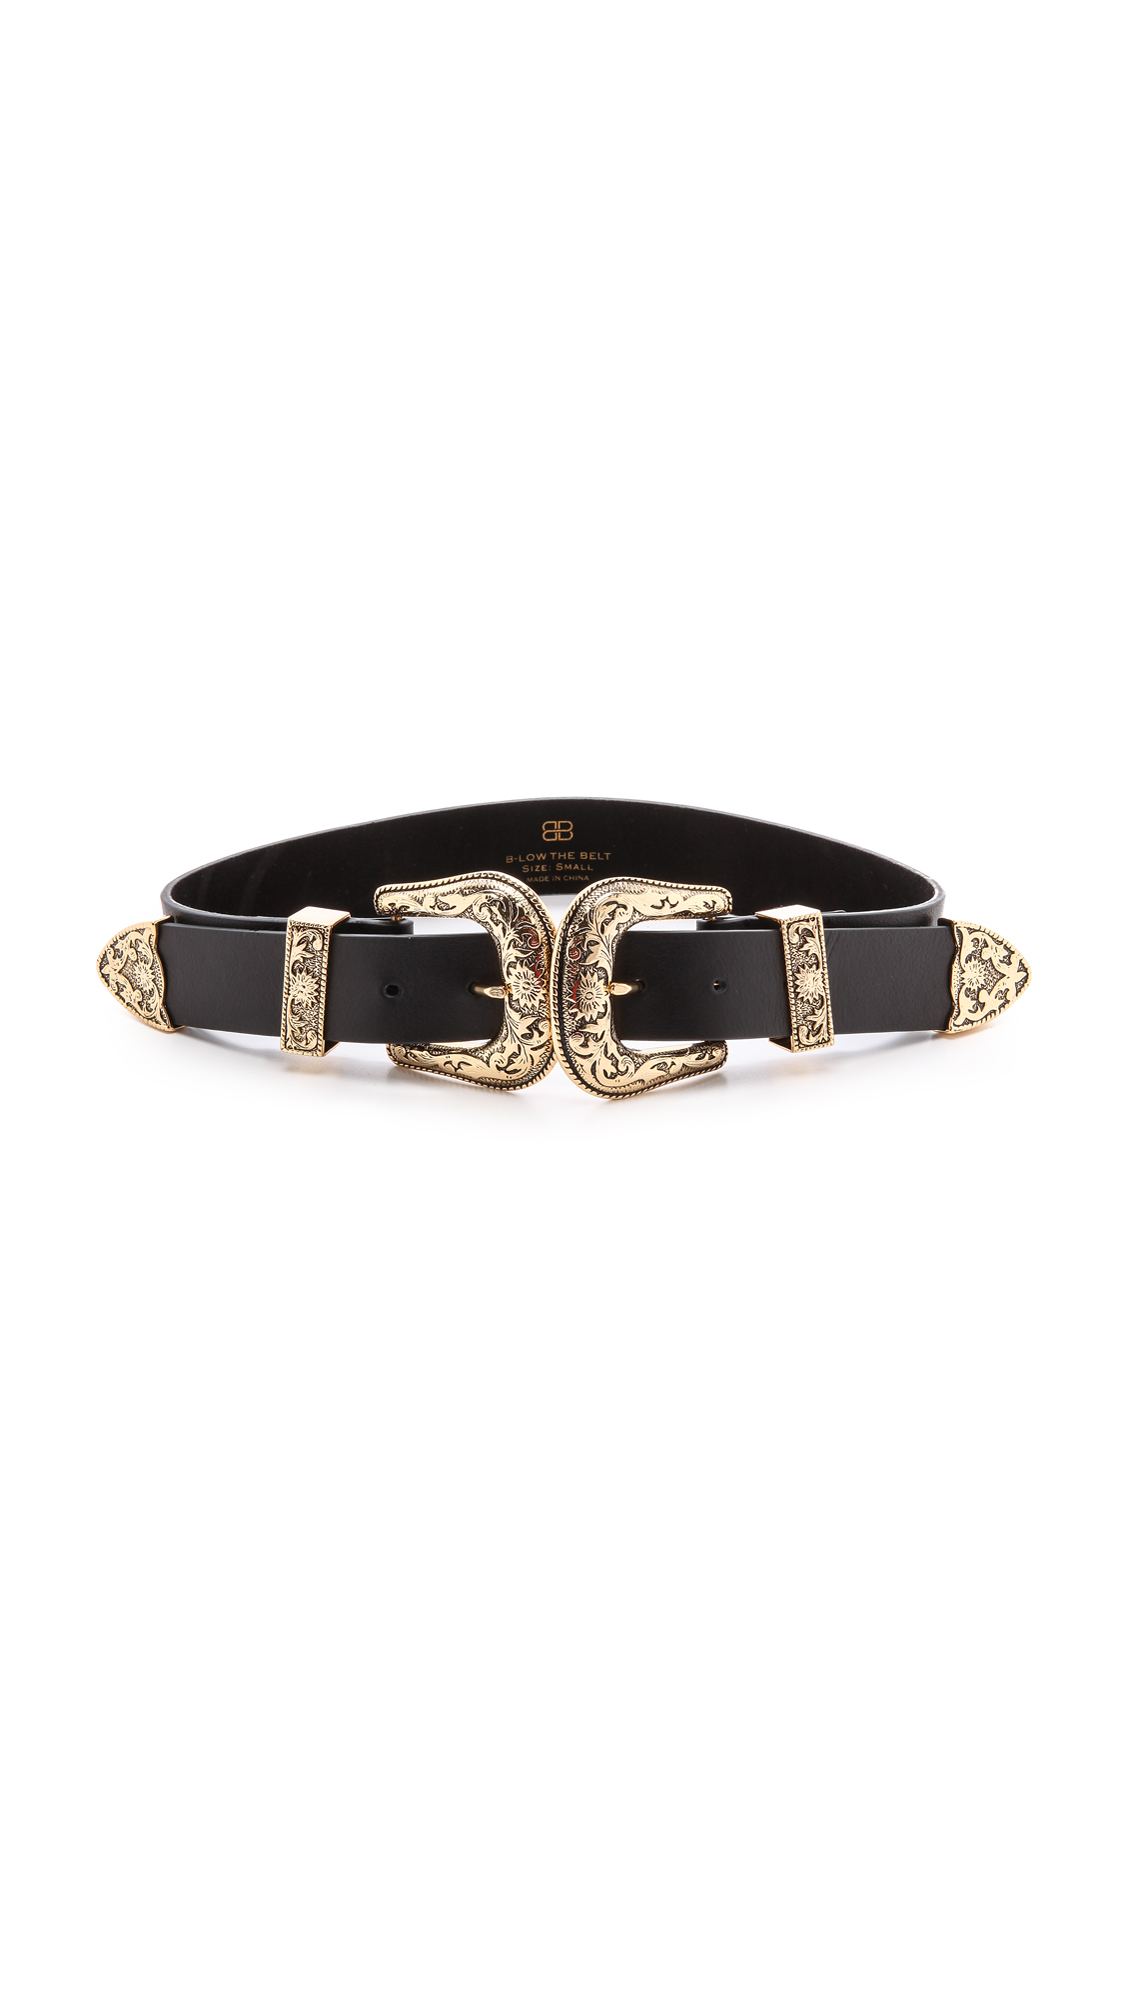 B Low The Belt Bri Bri Belt In Black Lyst